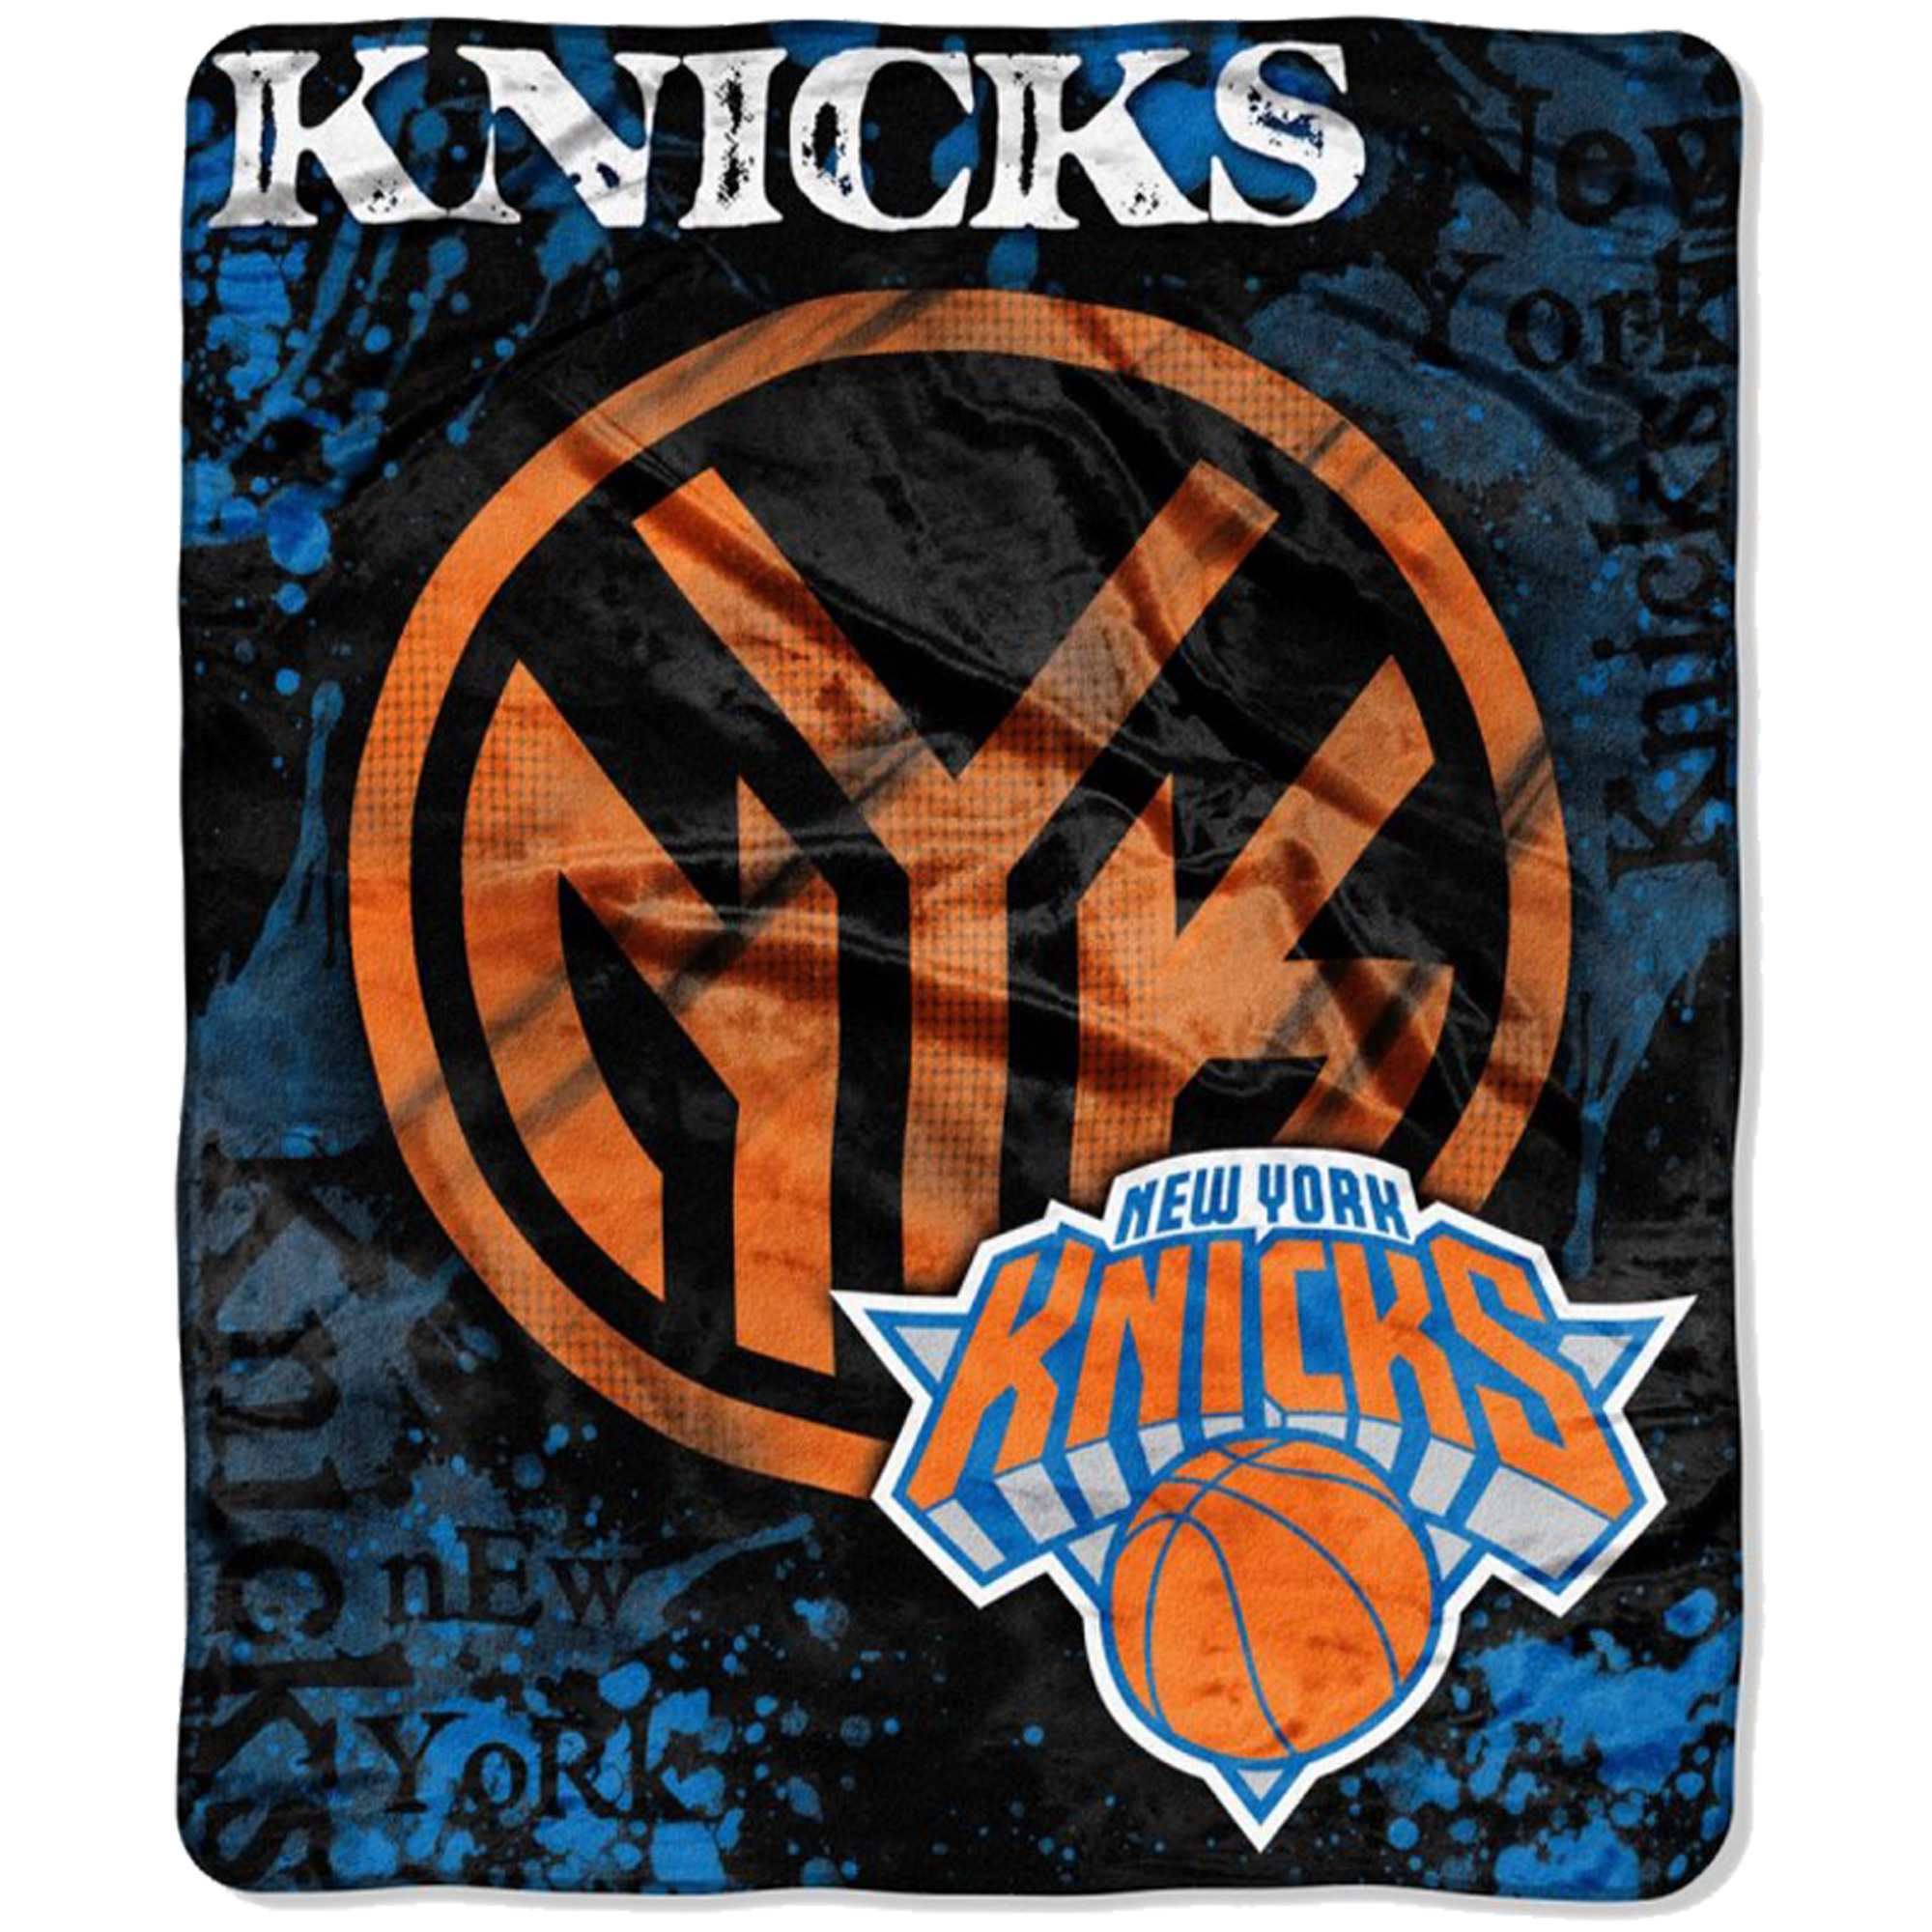 "New York Knicks 50"" x 60"" Plush Blanket - No Size"